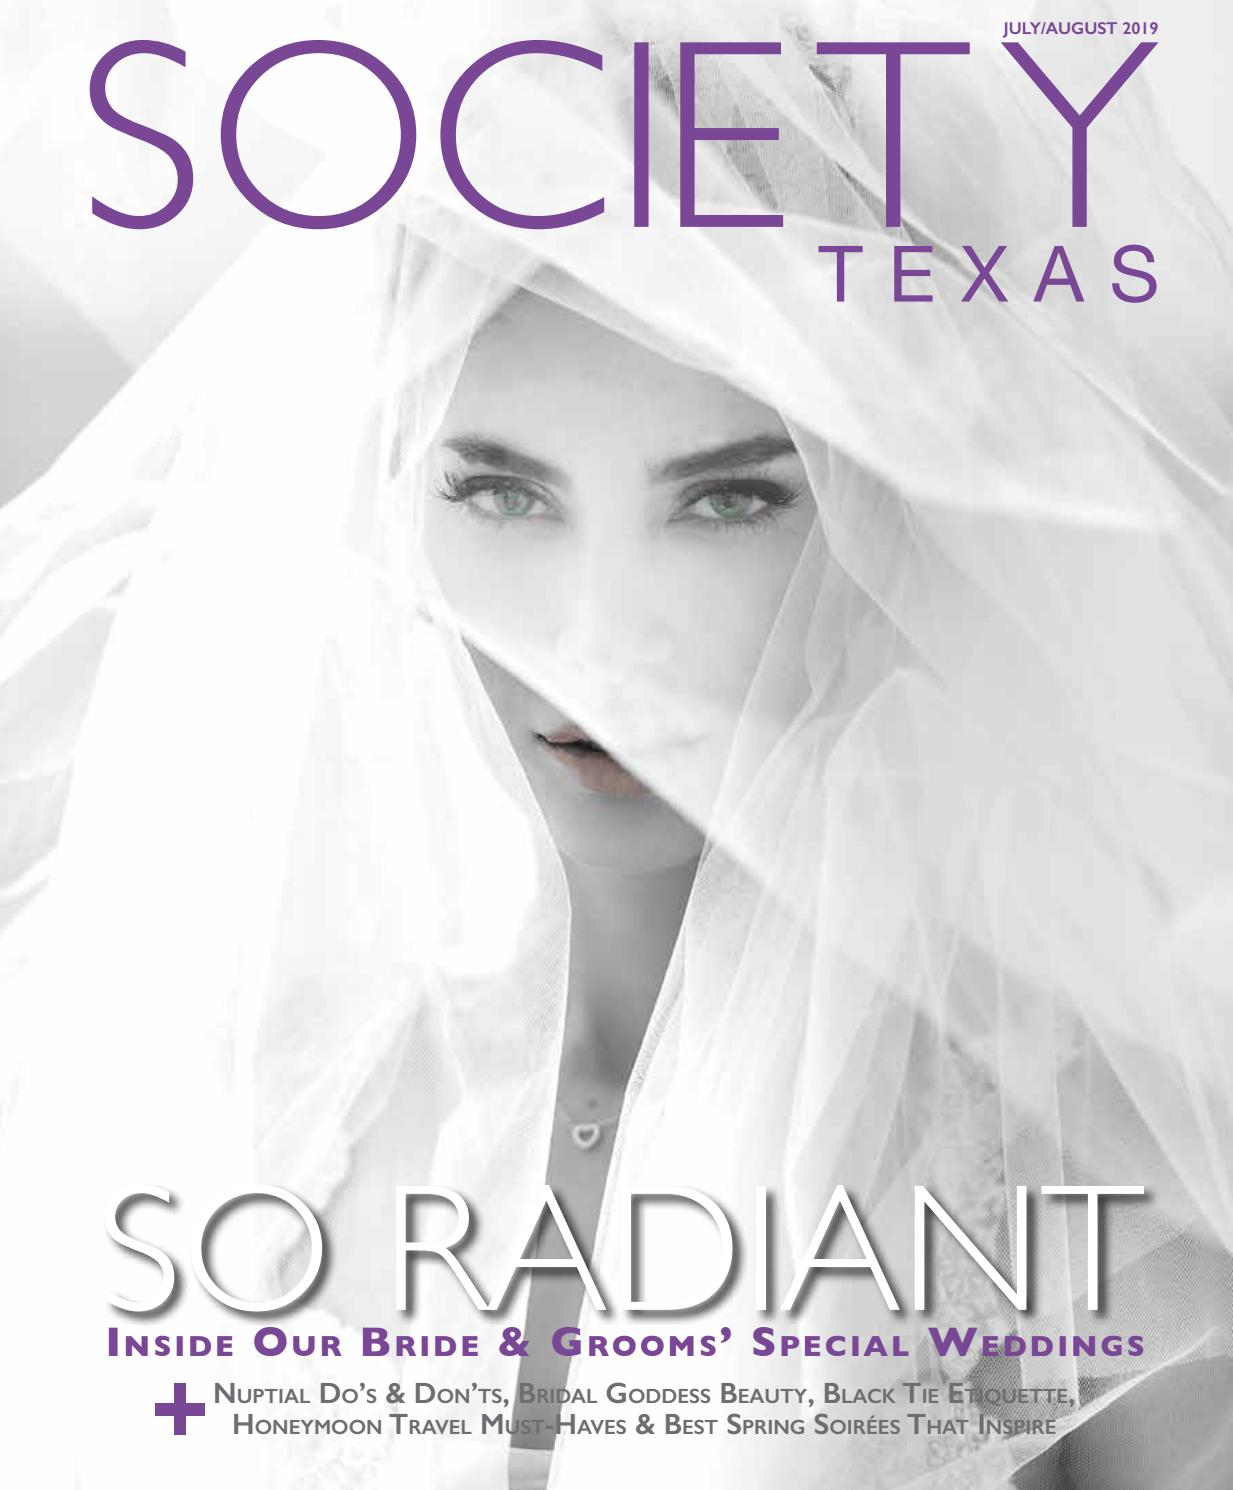 Society Texas July August 2019 By Societytexas Issuu